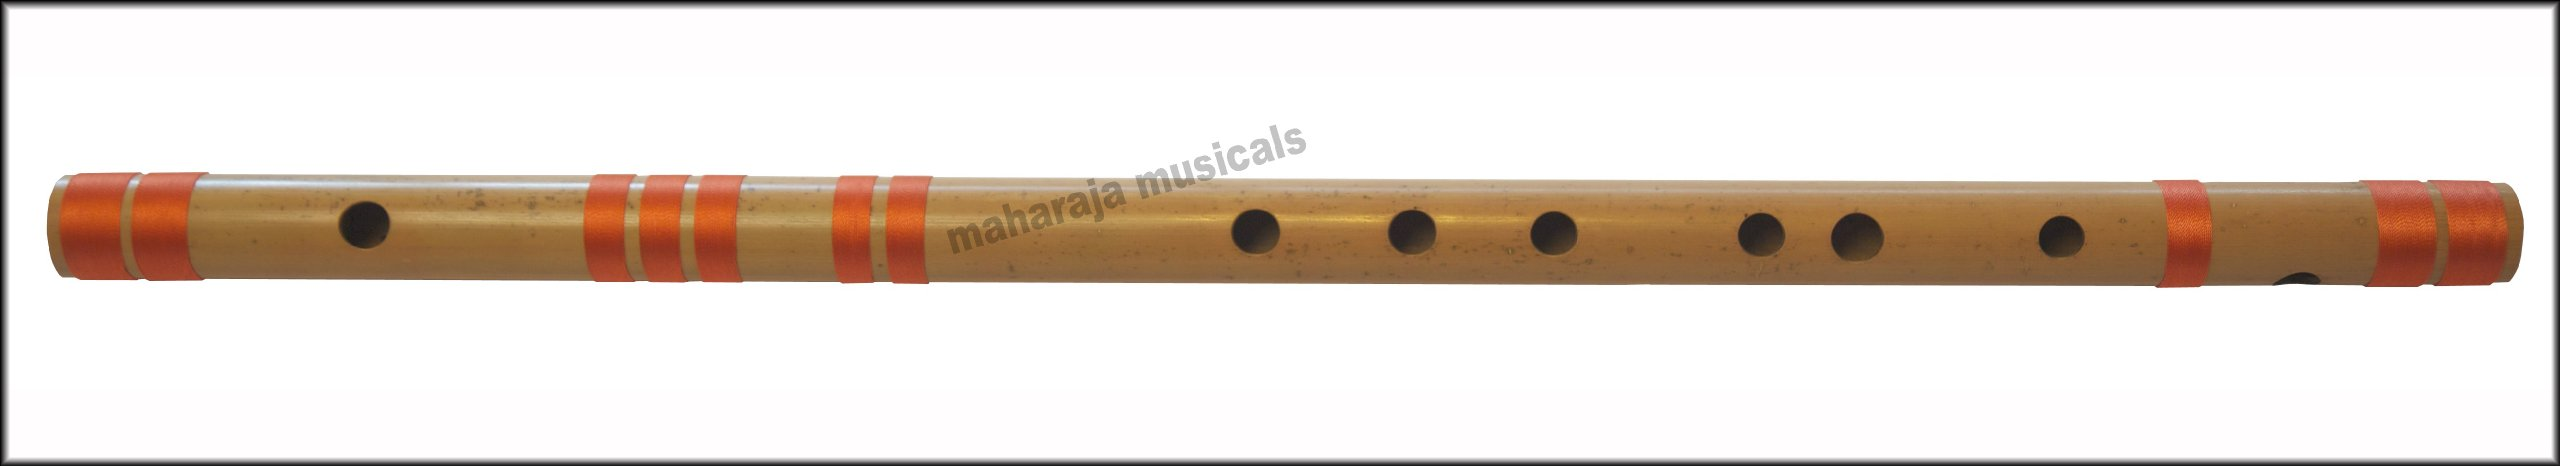 Bansuri, Indian Bamboo Flute, Scale G Sharp Bass, 24.5 Inches, Maharaja Musicals, Concert Quality, Accurately Tuned, Hindustani Professional Bansuri Indian Flute, Nylon Pipe Bag Included (PDI-CGE)